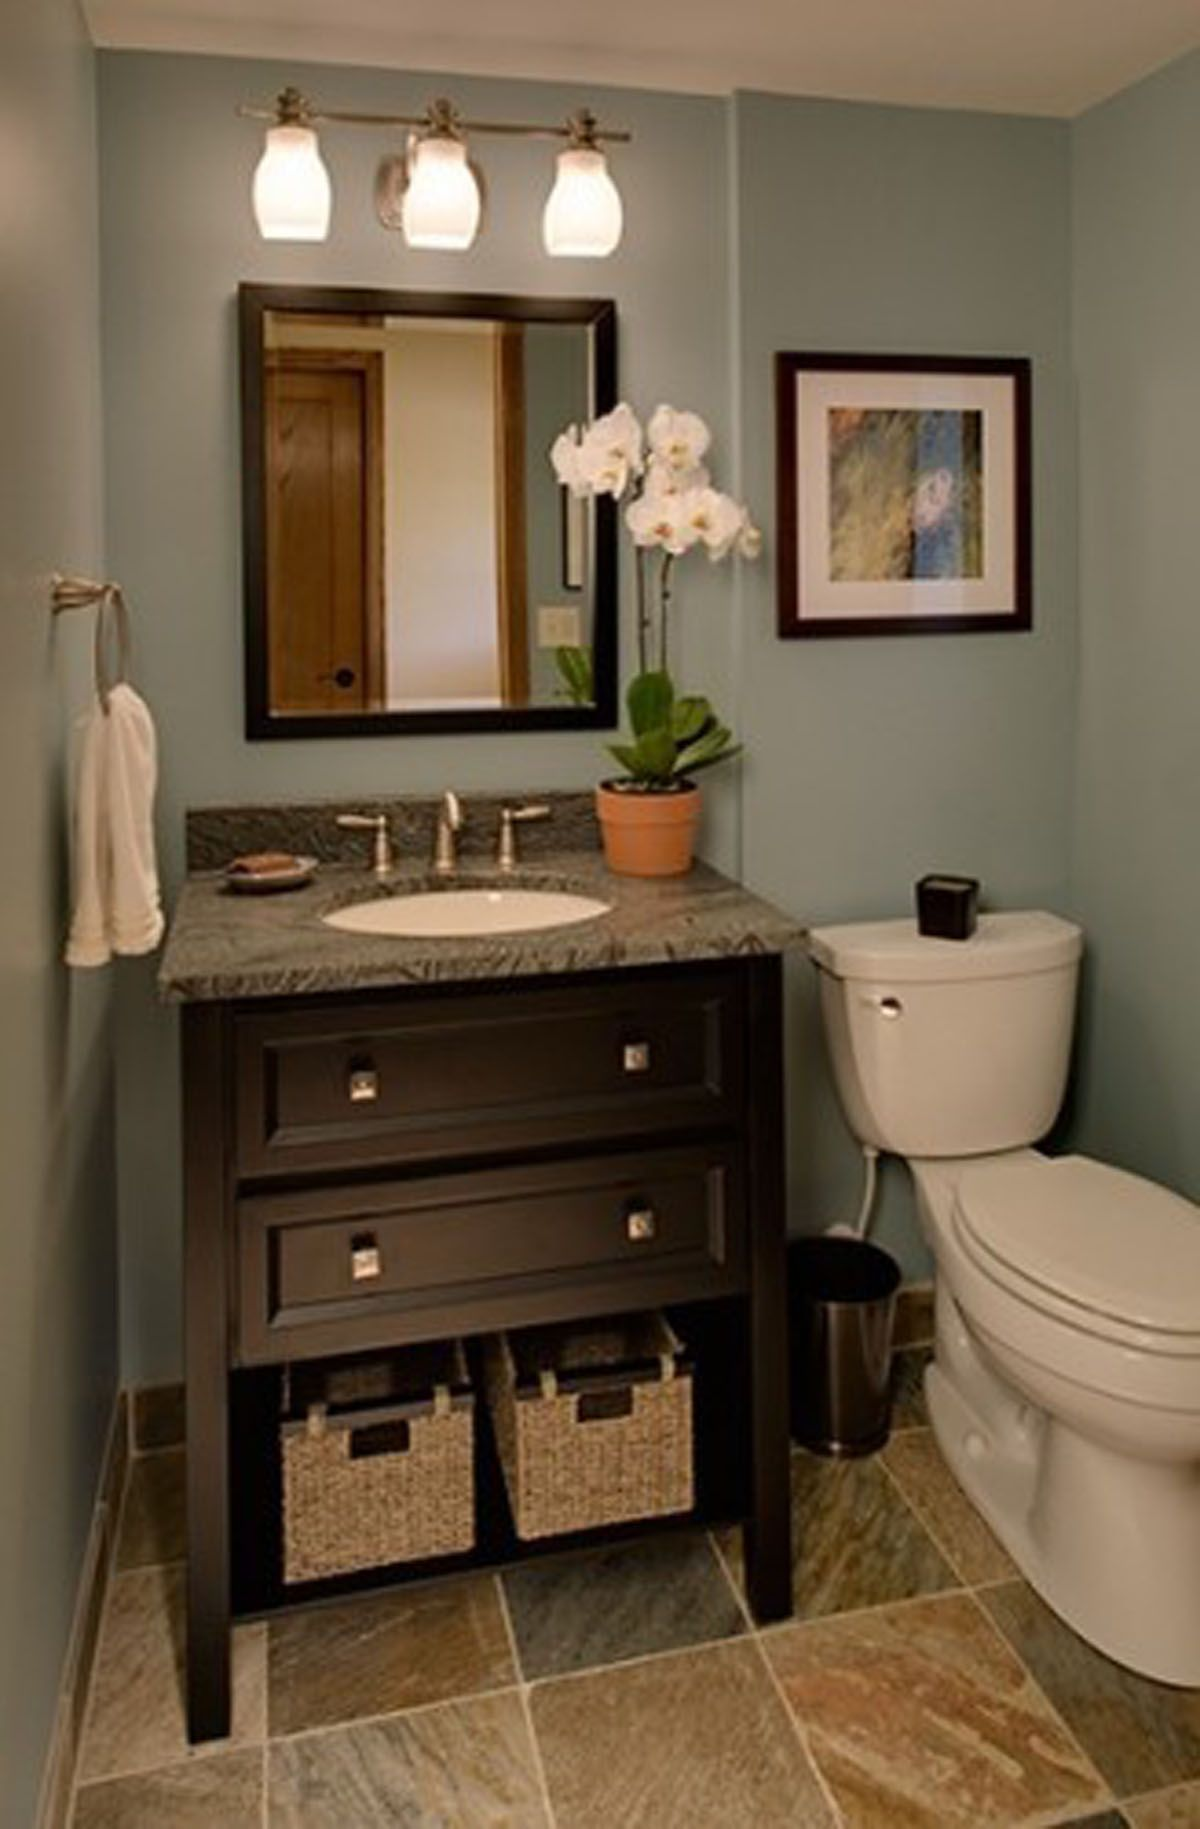 Half bathroom decorating ideas design ideas decors for Small 1 2 bathroom decorating ideas